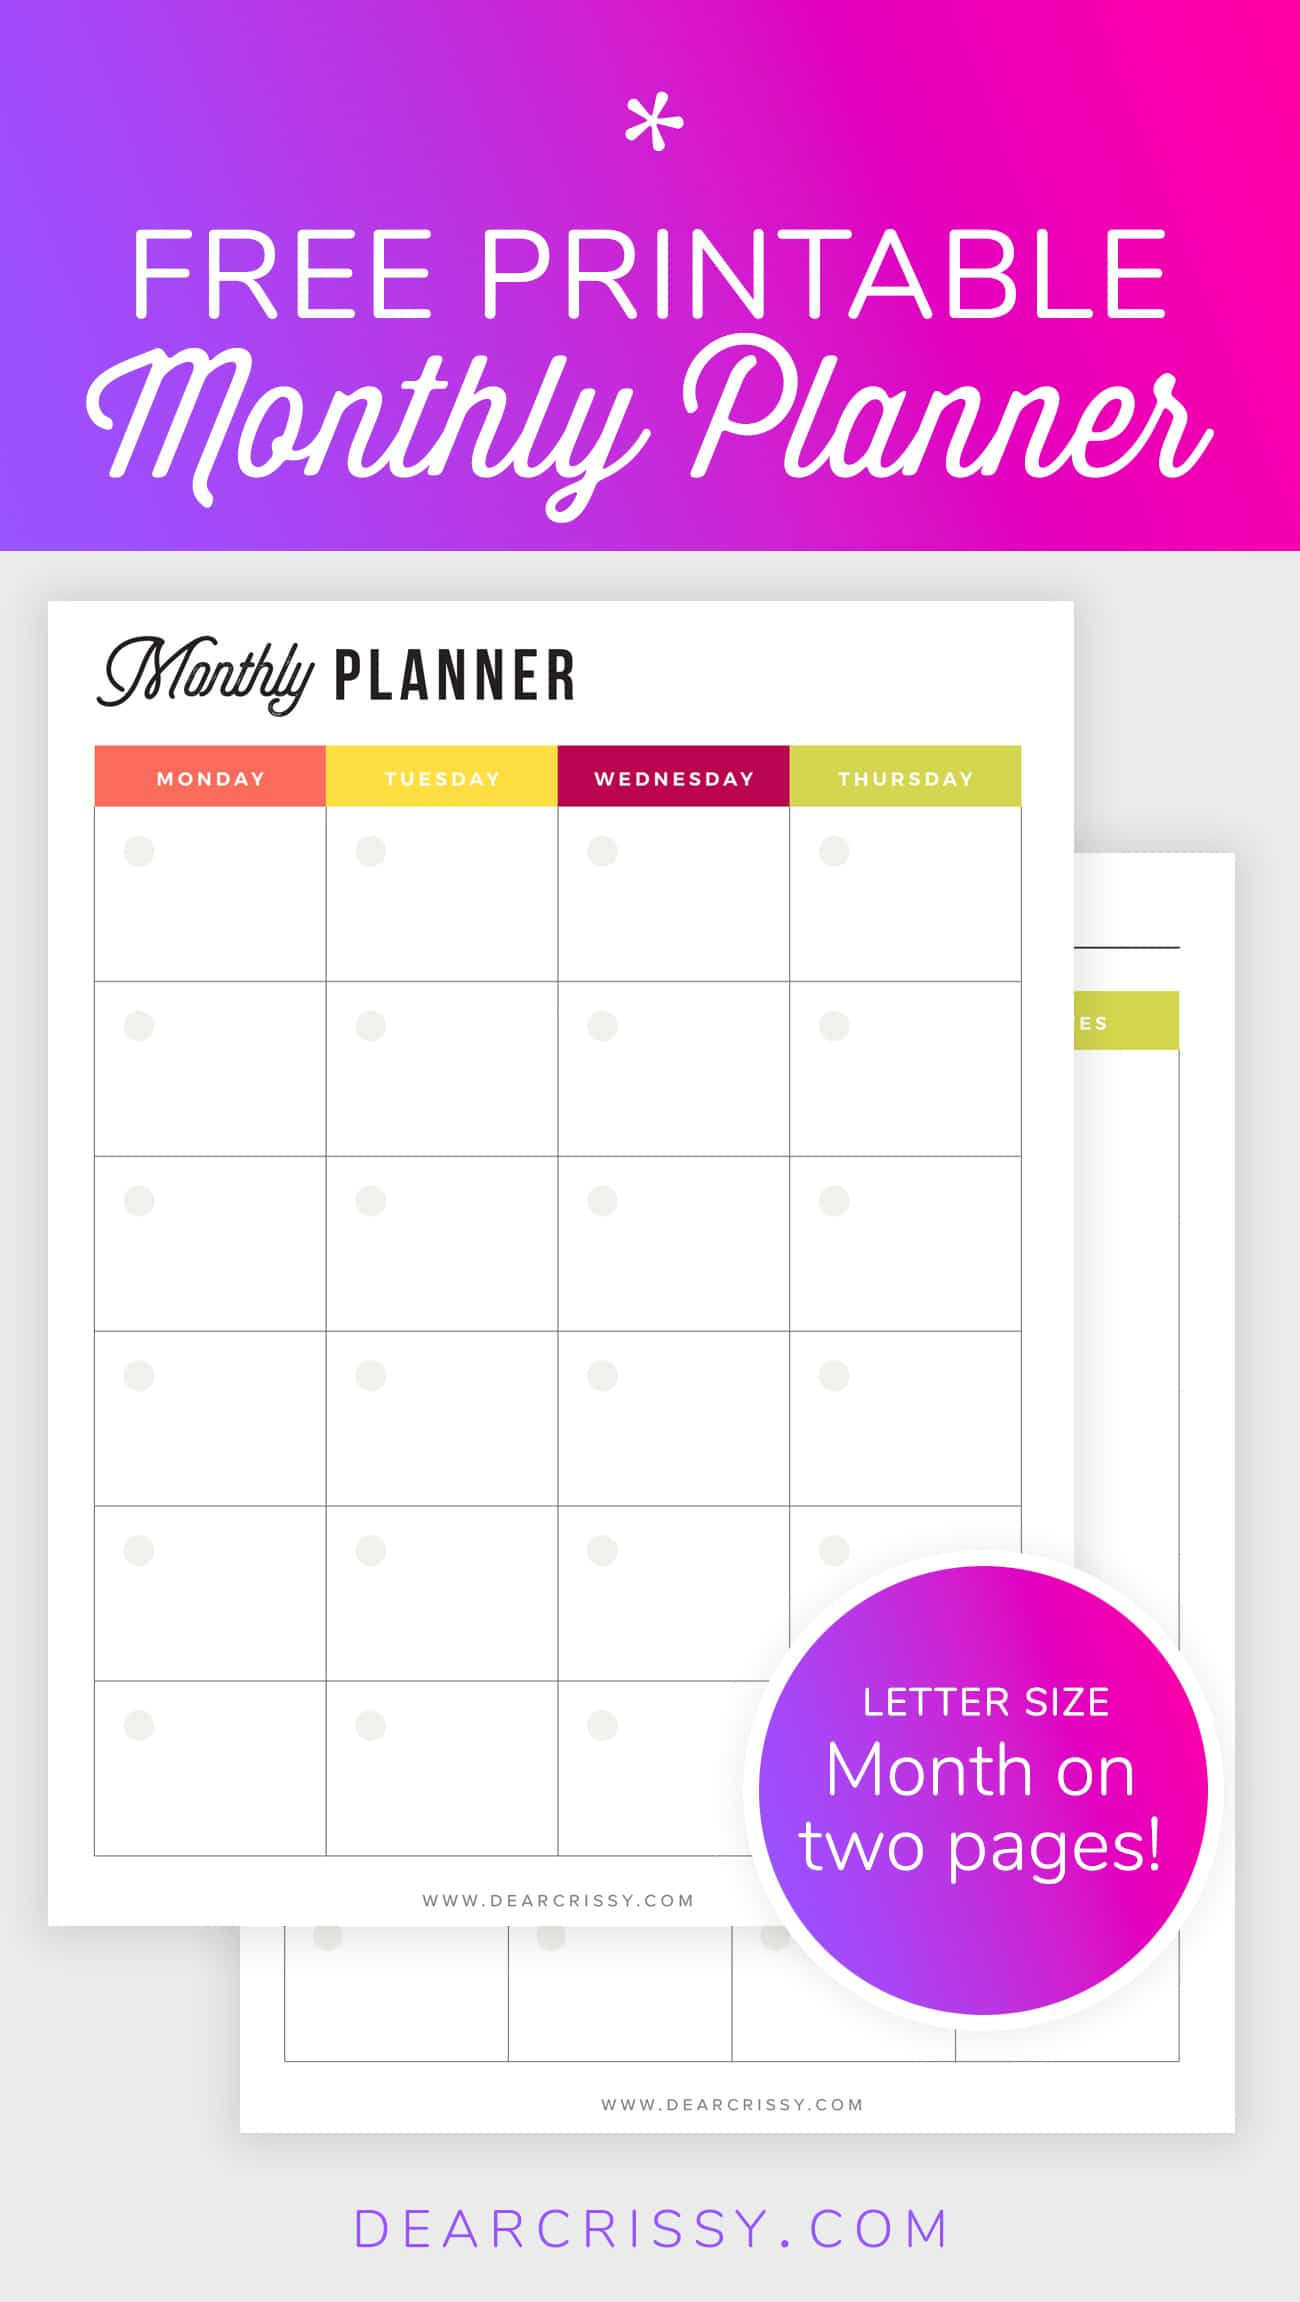 Free Printable Monthly Planner - Mo2P Letter Size Planner  Calender Monthly Print Outs